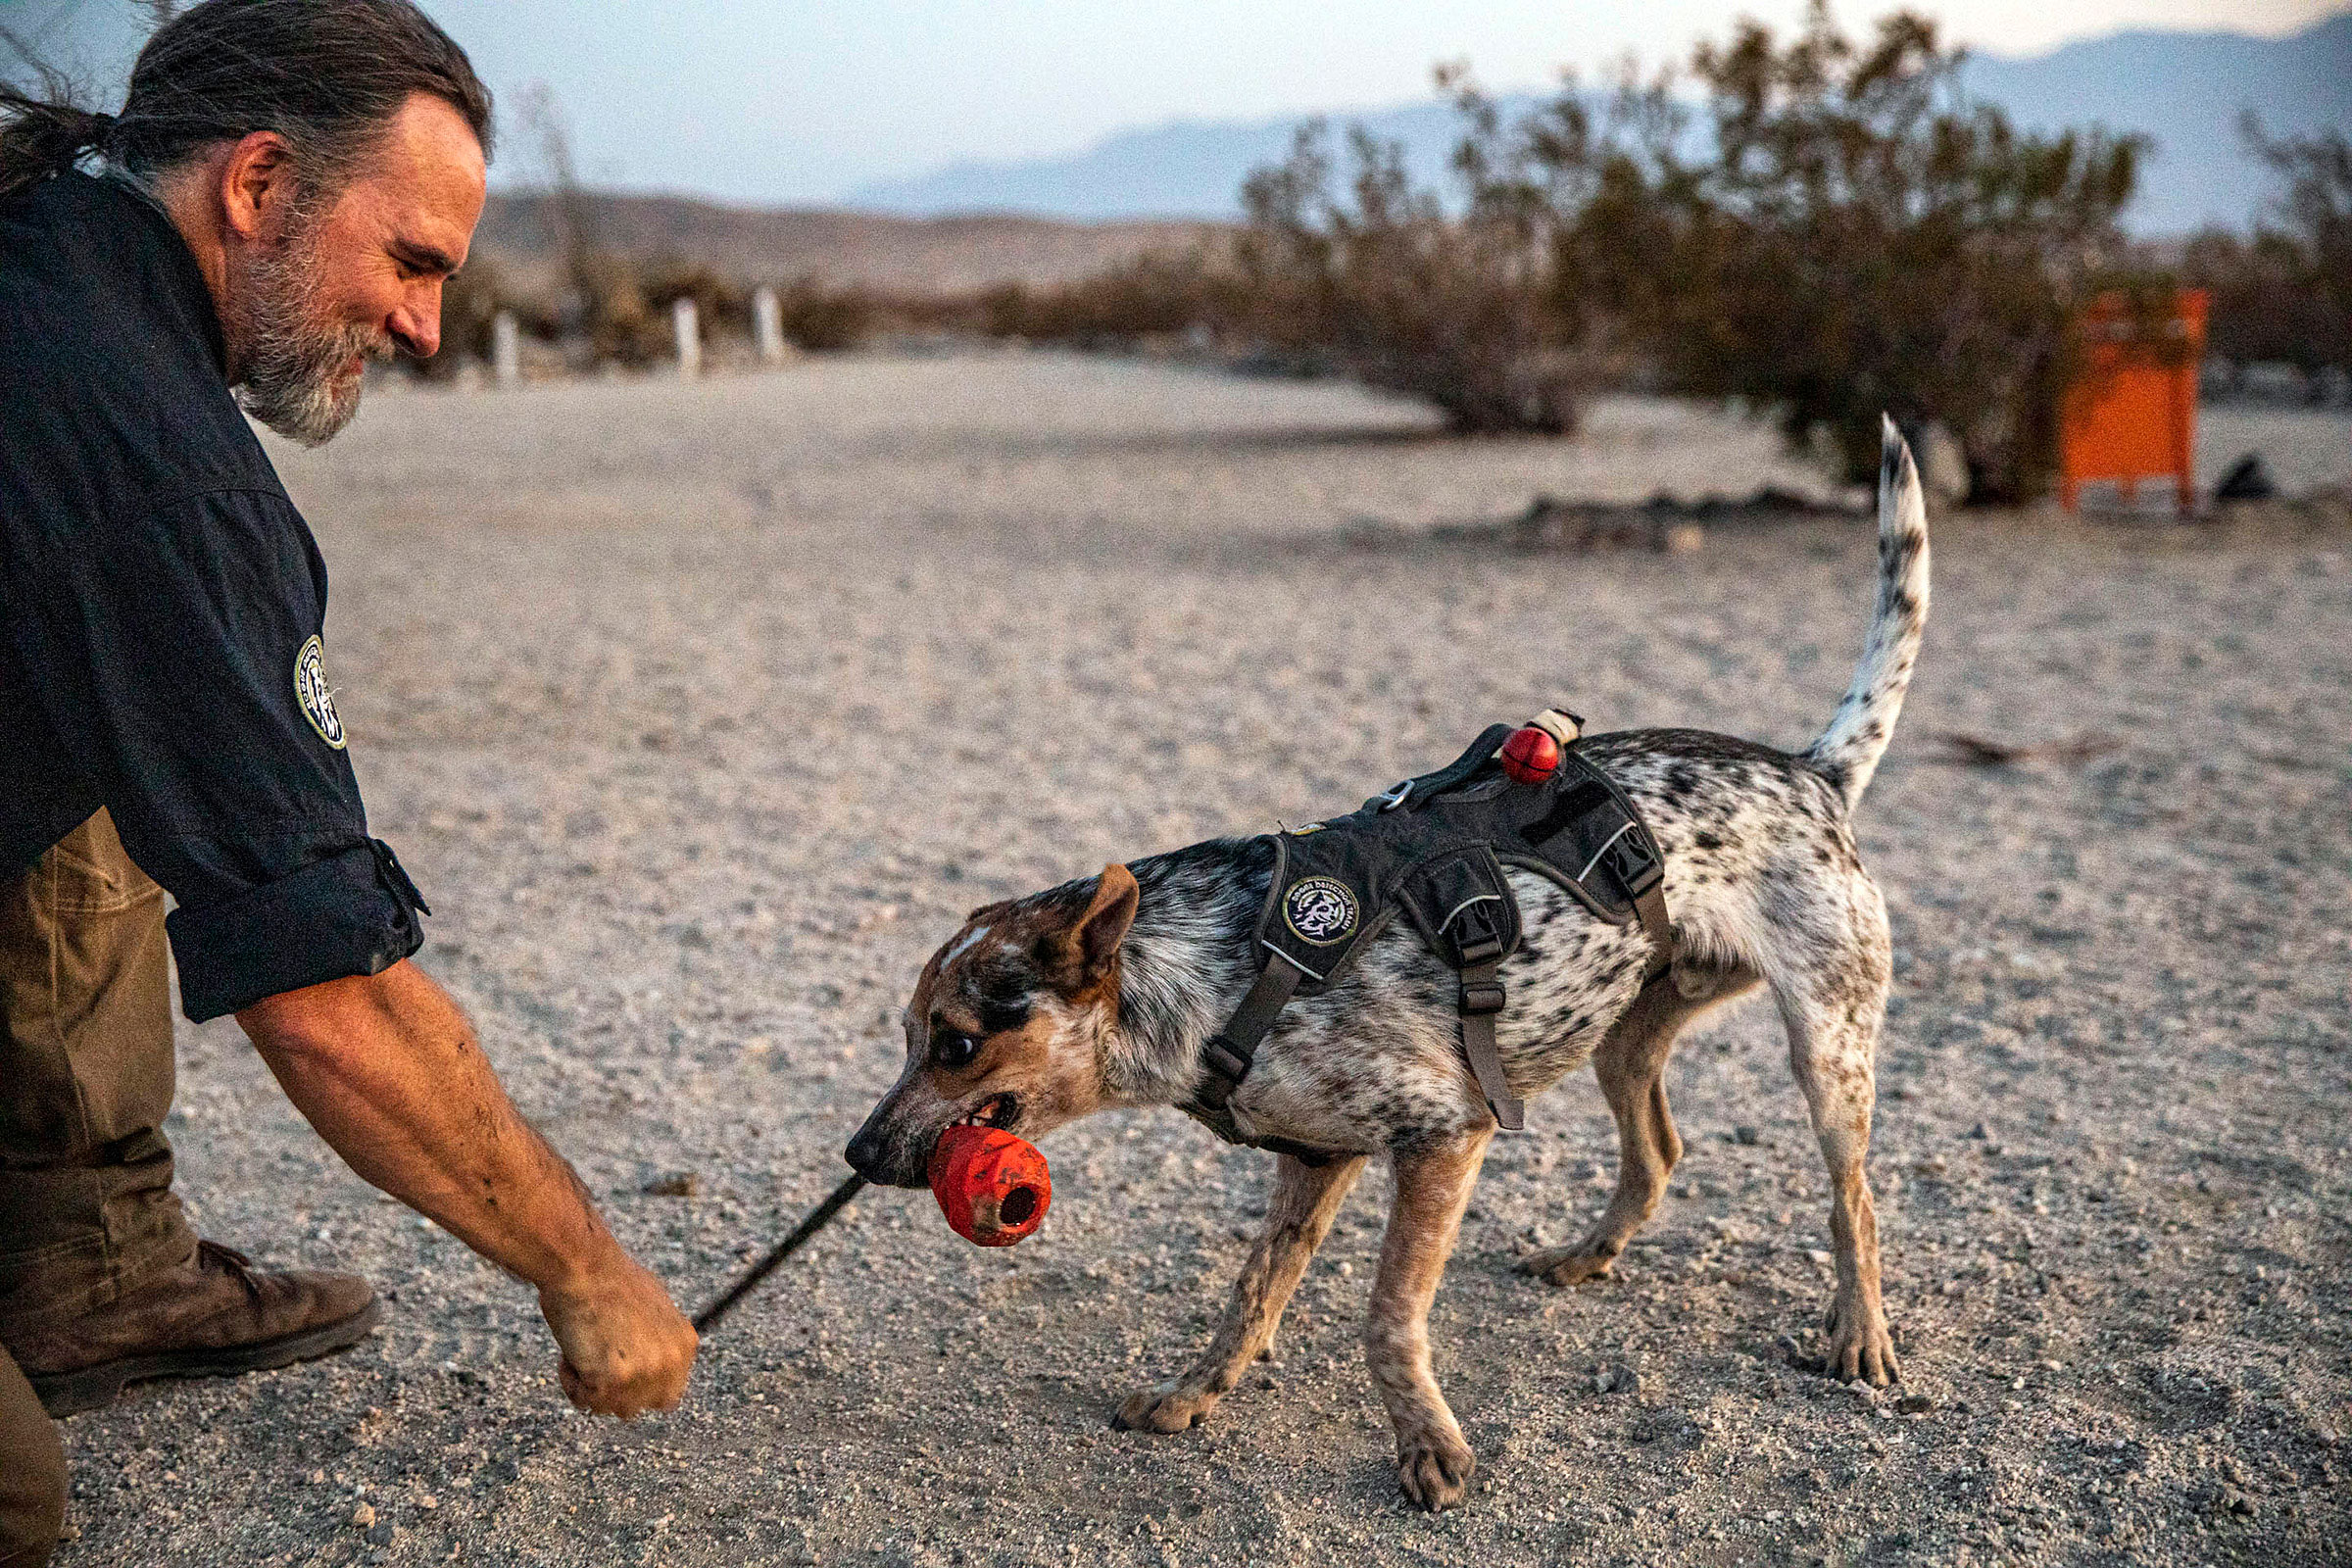 A smiling man in a dark shirt crouches in a desert landscape and plays with a dog with mottled white, gray, and brown fur. The dog is wearing a black harness and pulling with its teeth on a red toy attached to a rope. The man holds the rope in one hand.